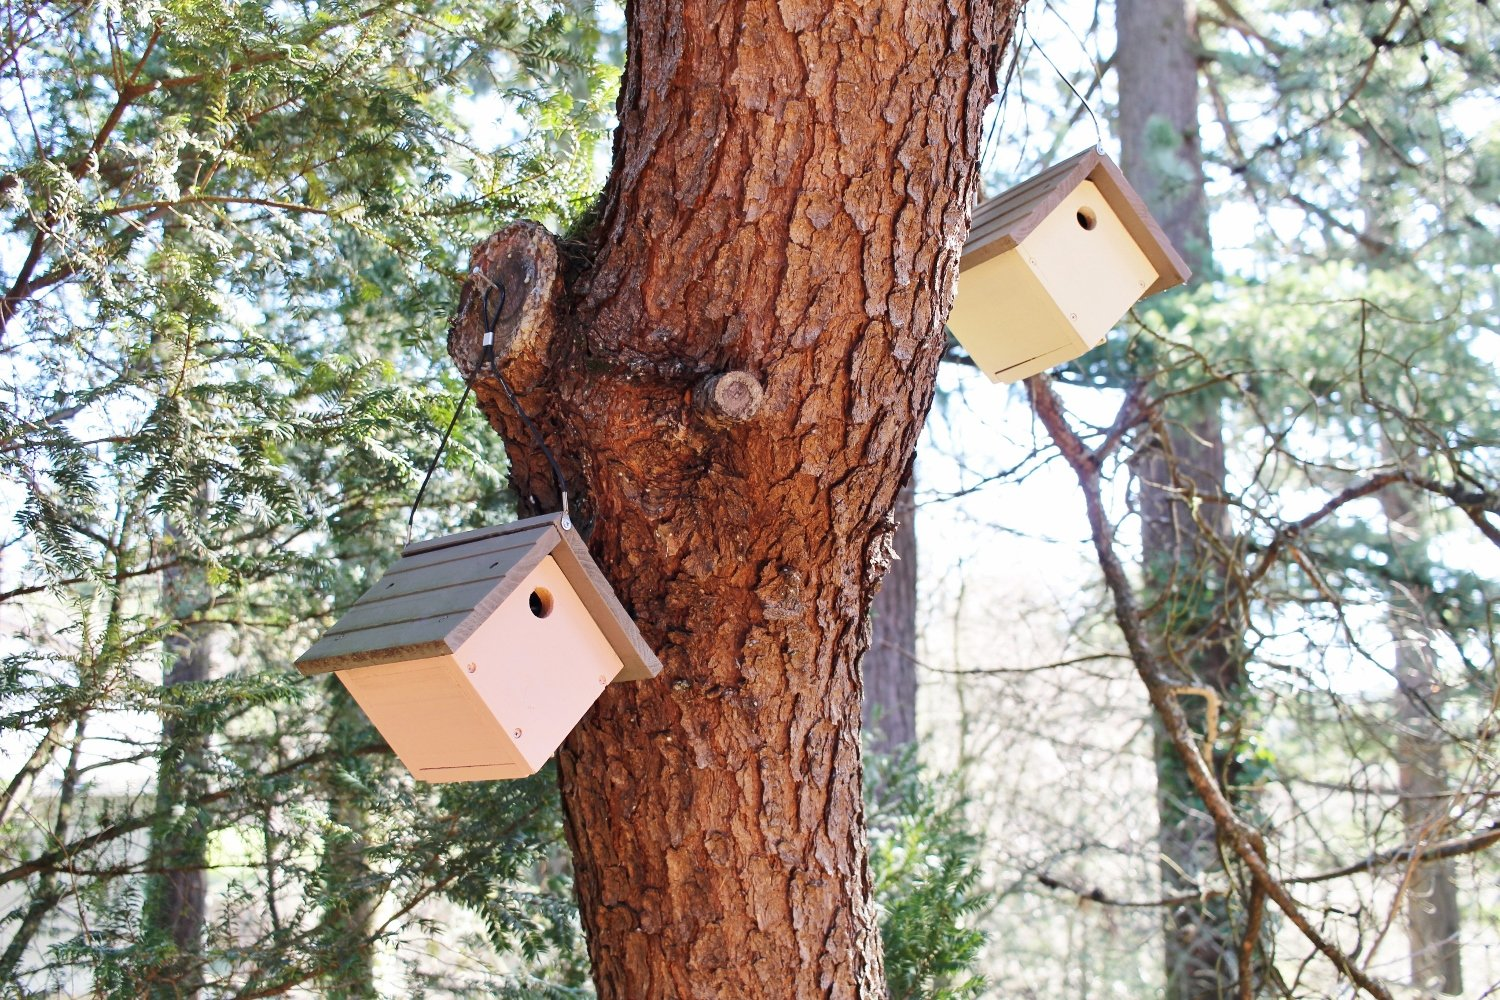 The Whimsical Birdhouse Village Your Yard Needs Right Now